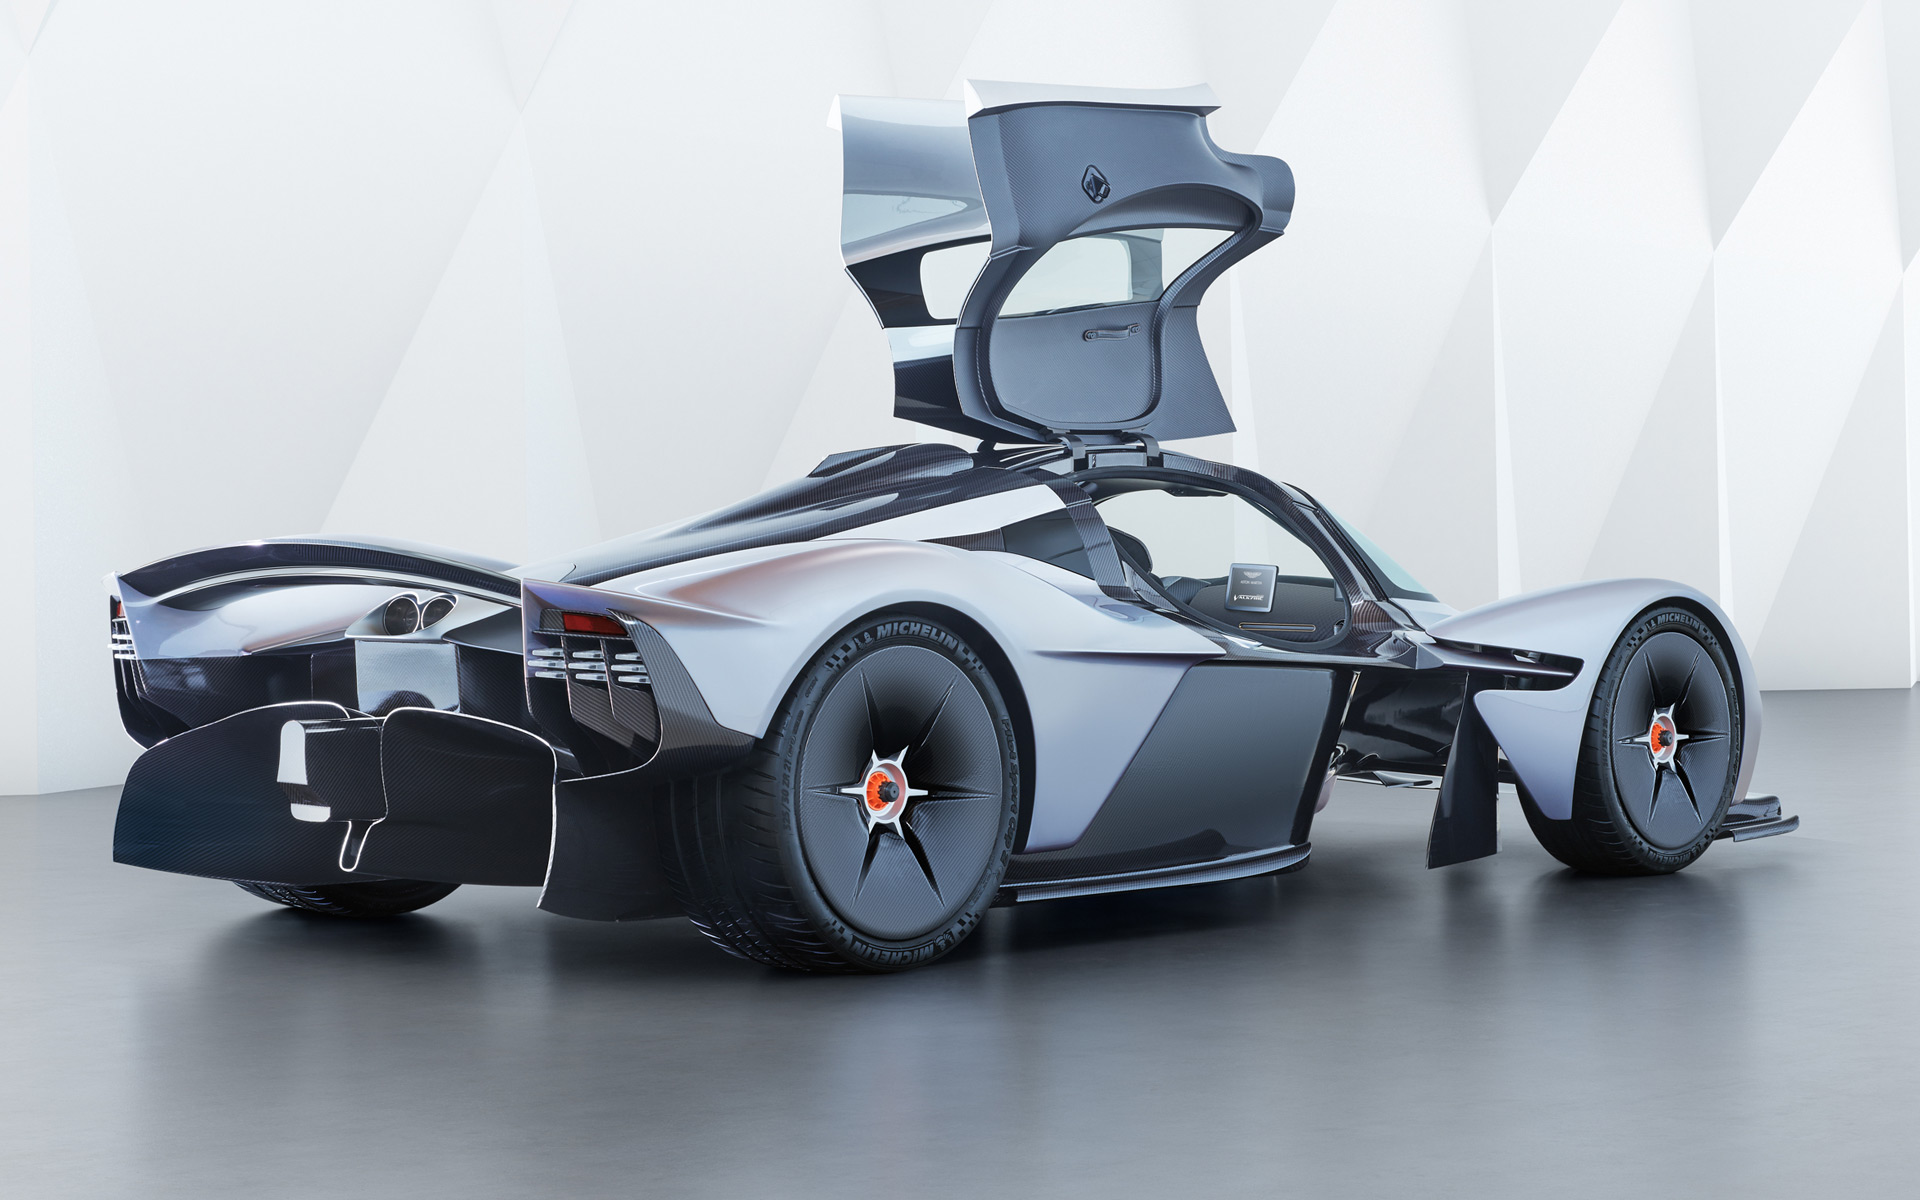 Production Aston Martin Valkyrie Will Be Even Wilder Than Concept